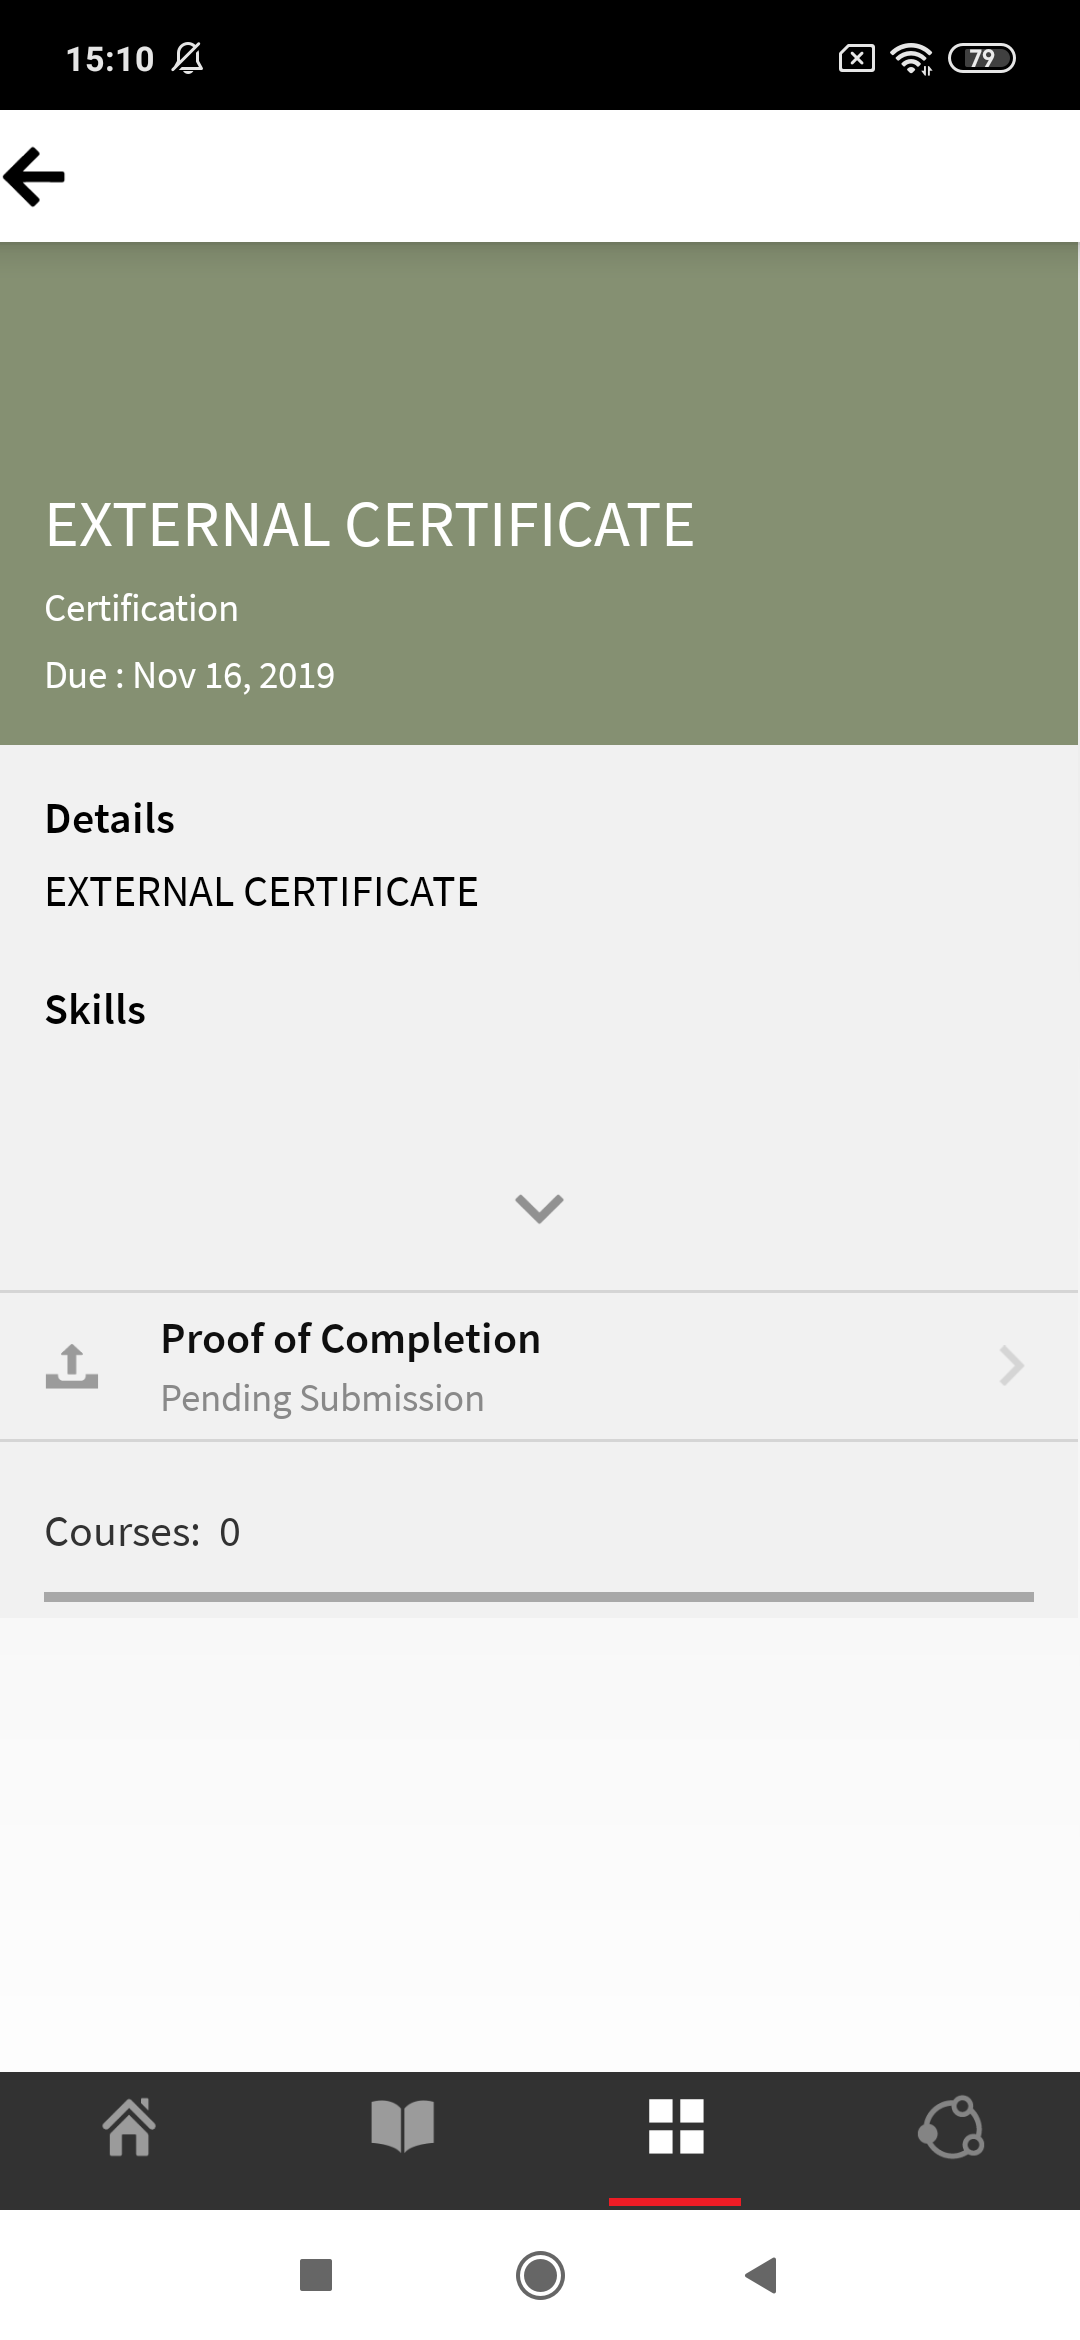 Submit proof of completion